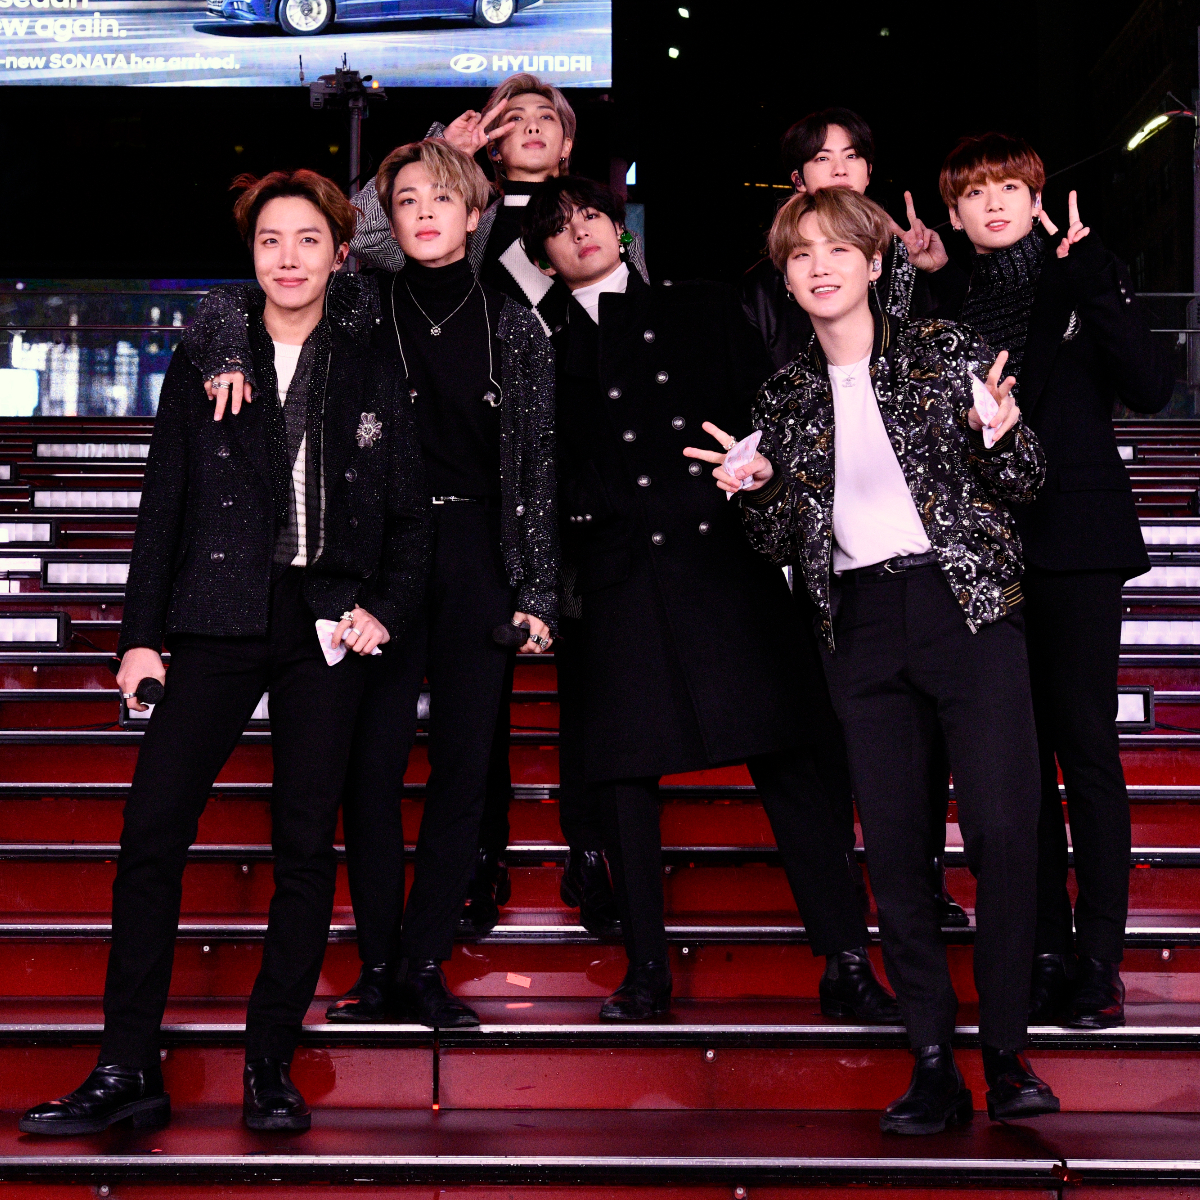 Only BTS' single Dynamite scored nominations at MAMA 2020